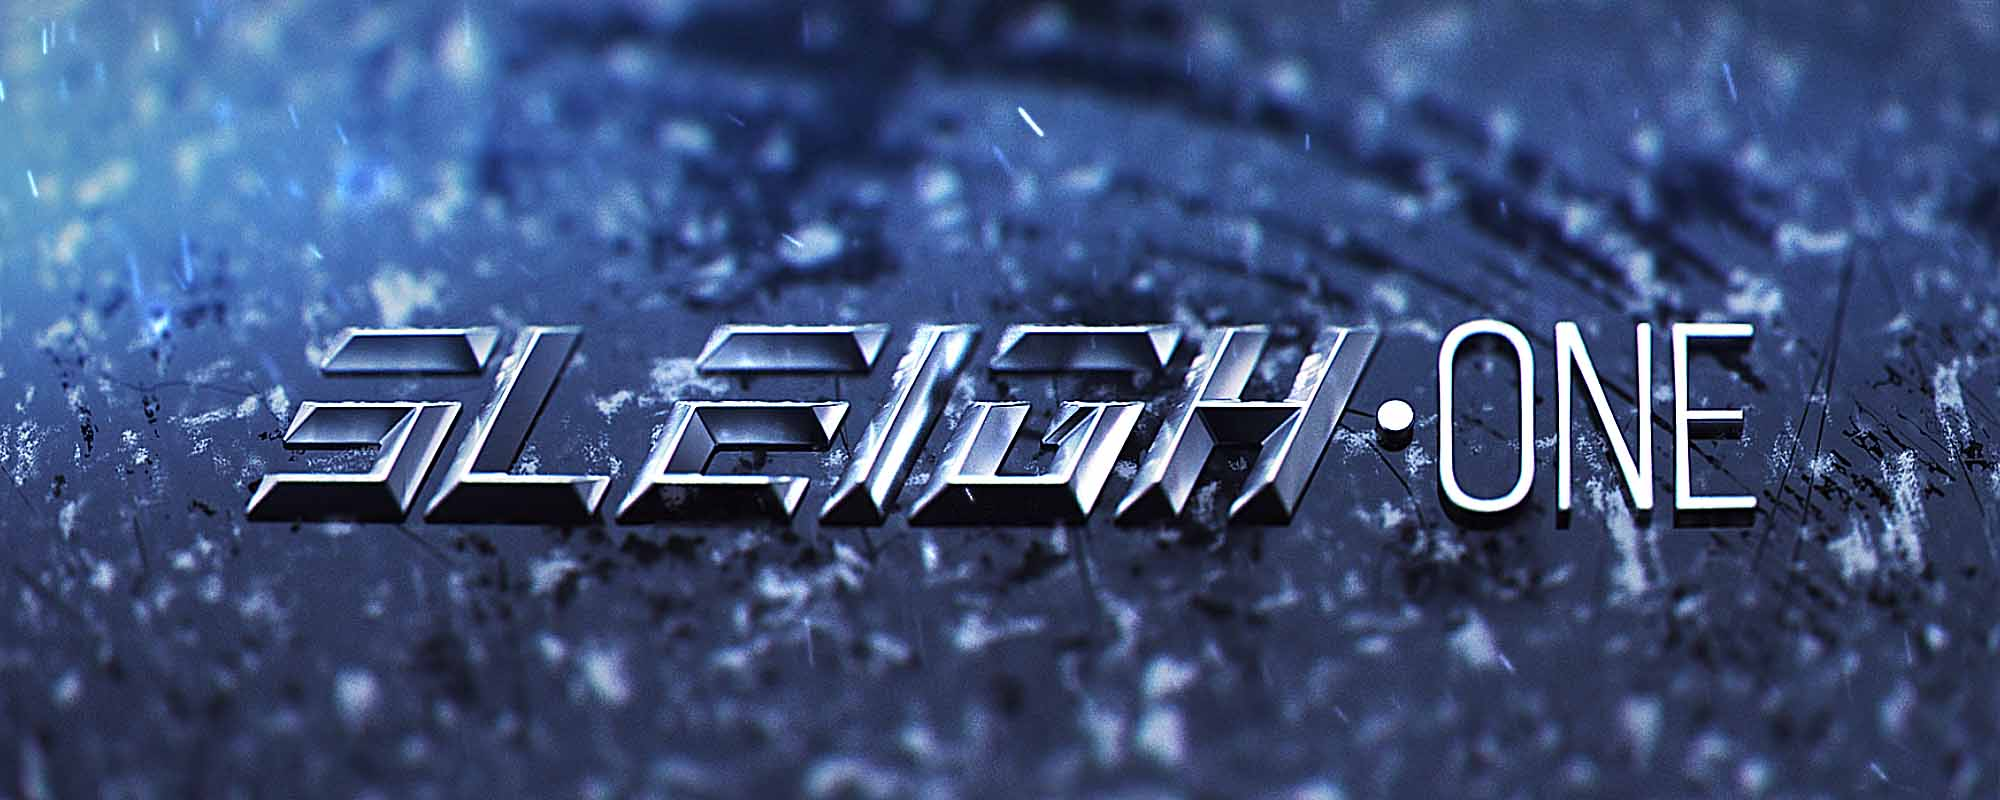 Sleigh One Badge, Close Up